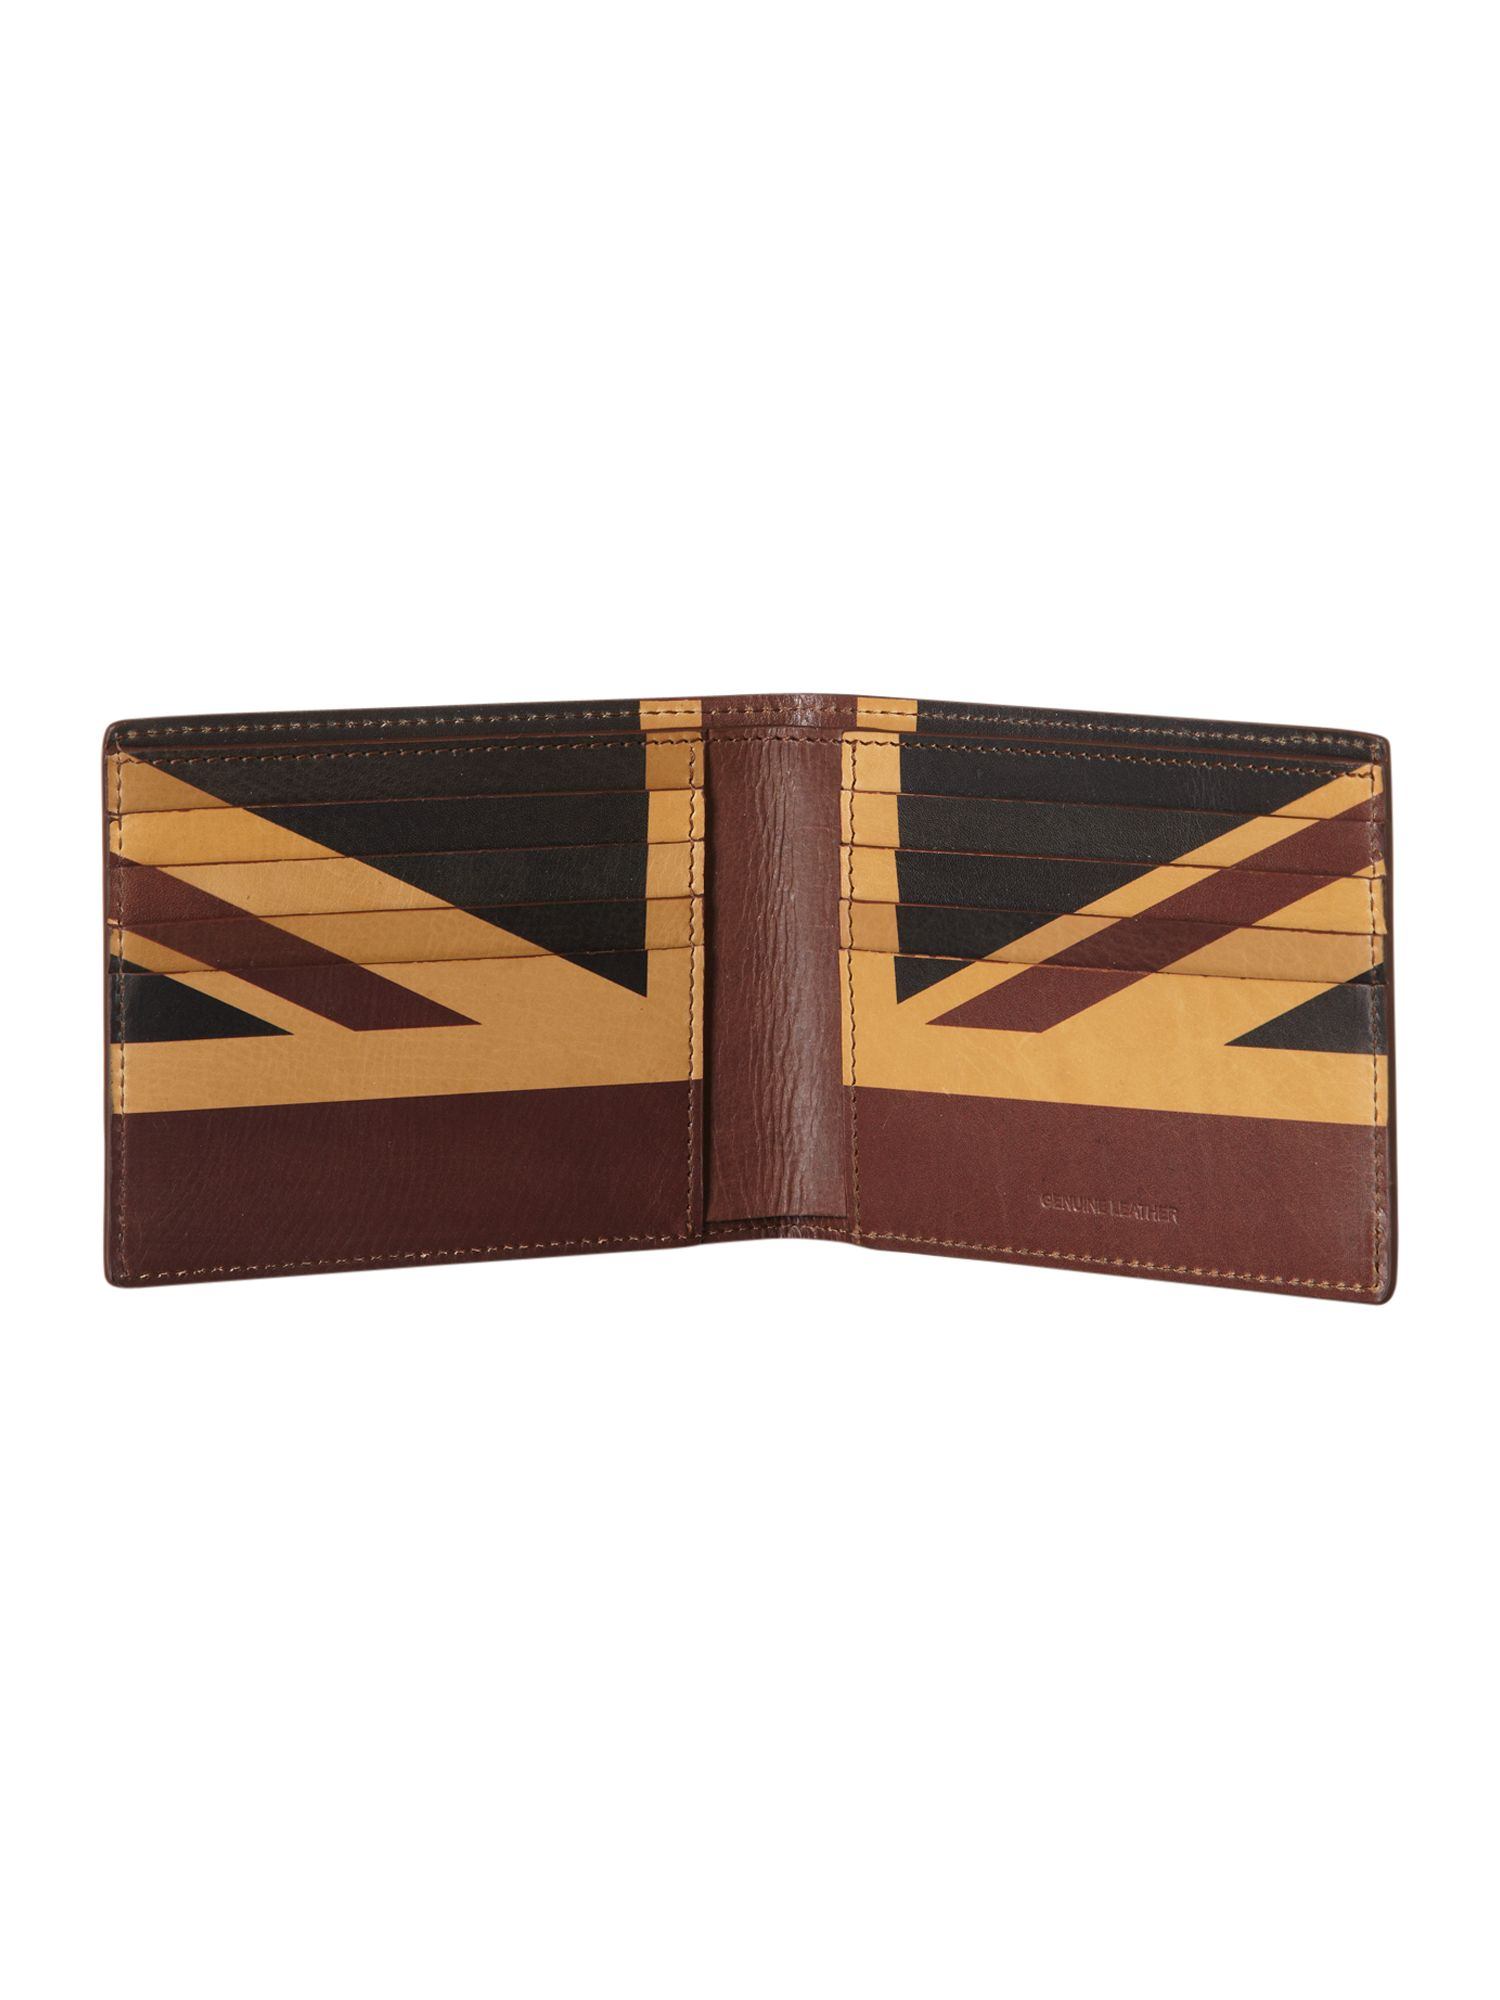 Union jack billfold wallet